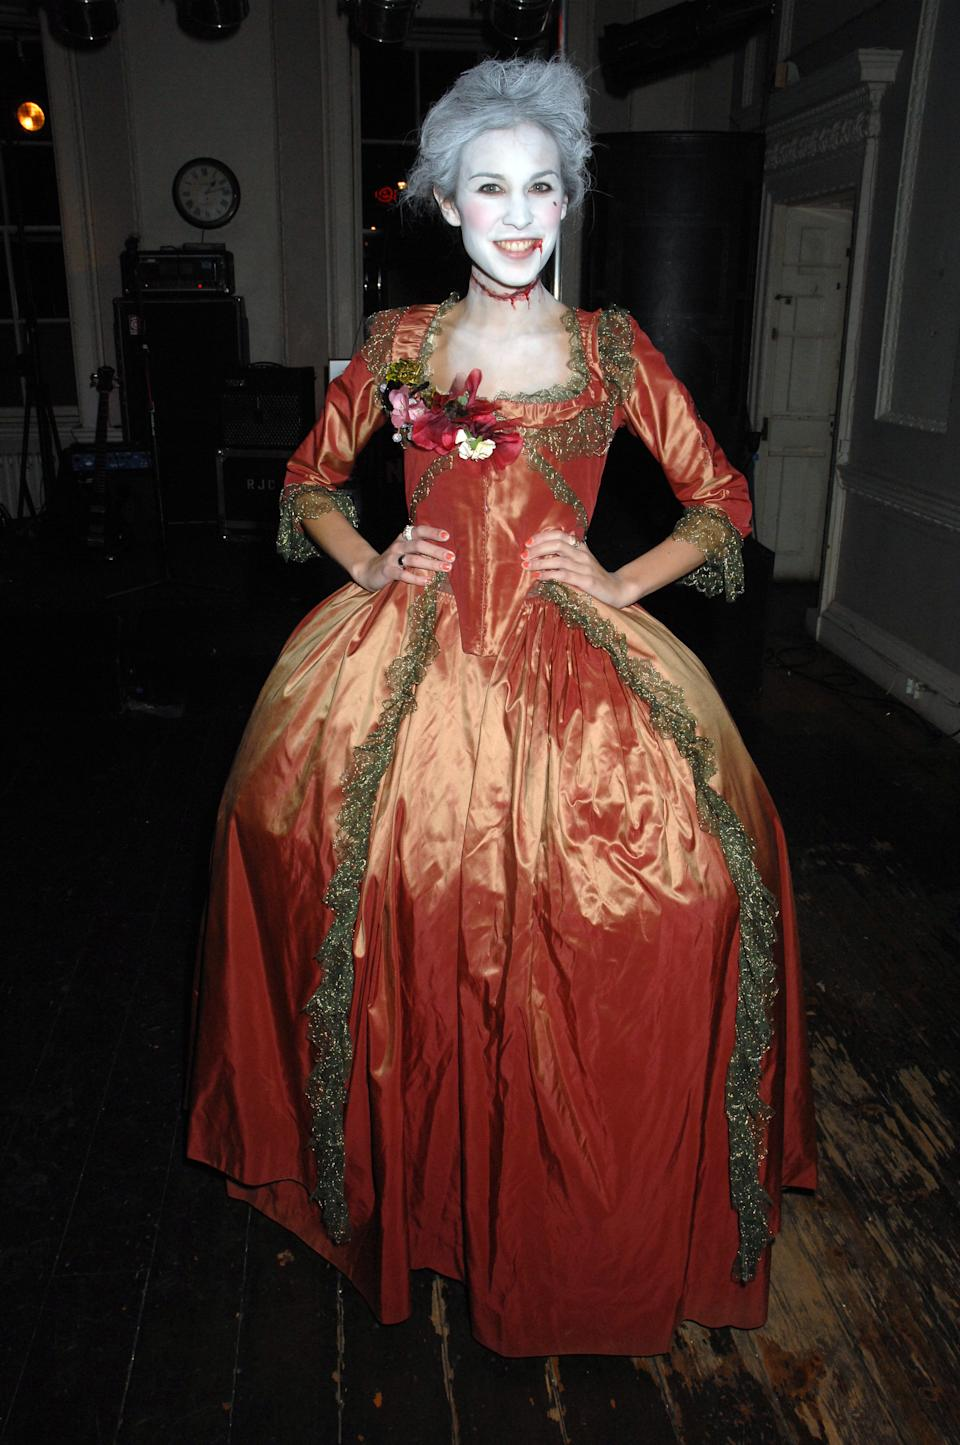 <strong>Alexa Chung as zombie Marie Antoinette</strong><br><br>When you can't choose between a scary costume or an elaborate royal costume, combine 'em.